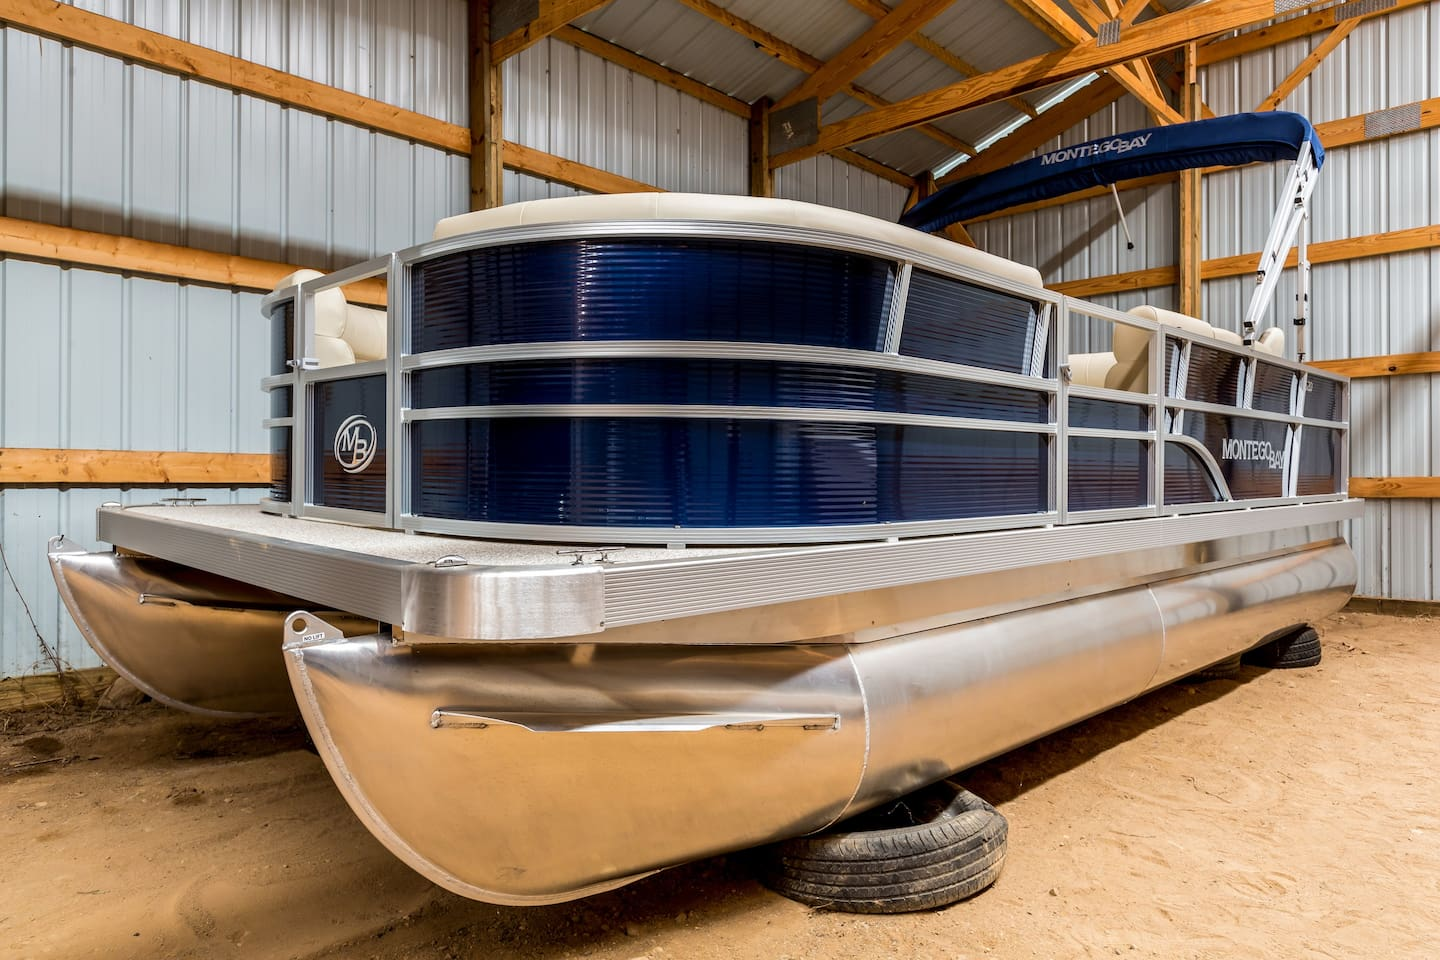 New 2018 Pontoon Boat is coming in April.  This is a similar model.